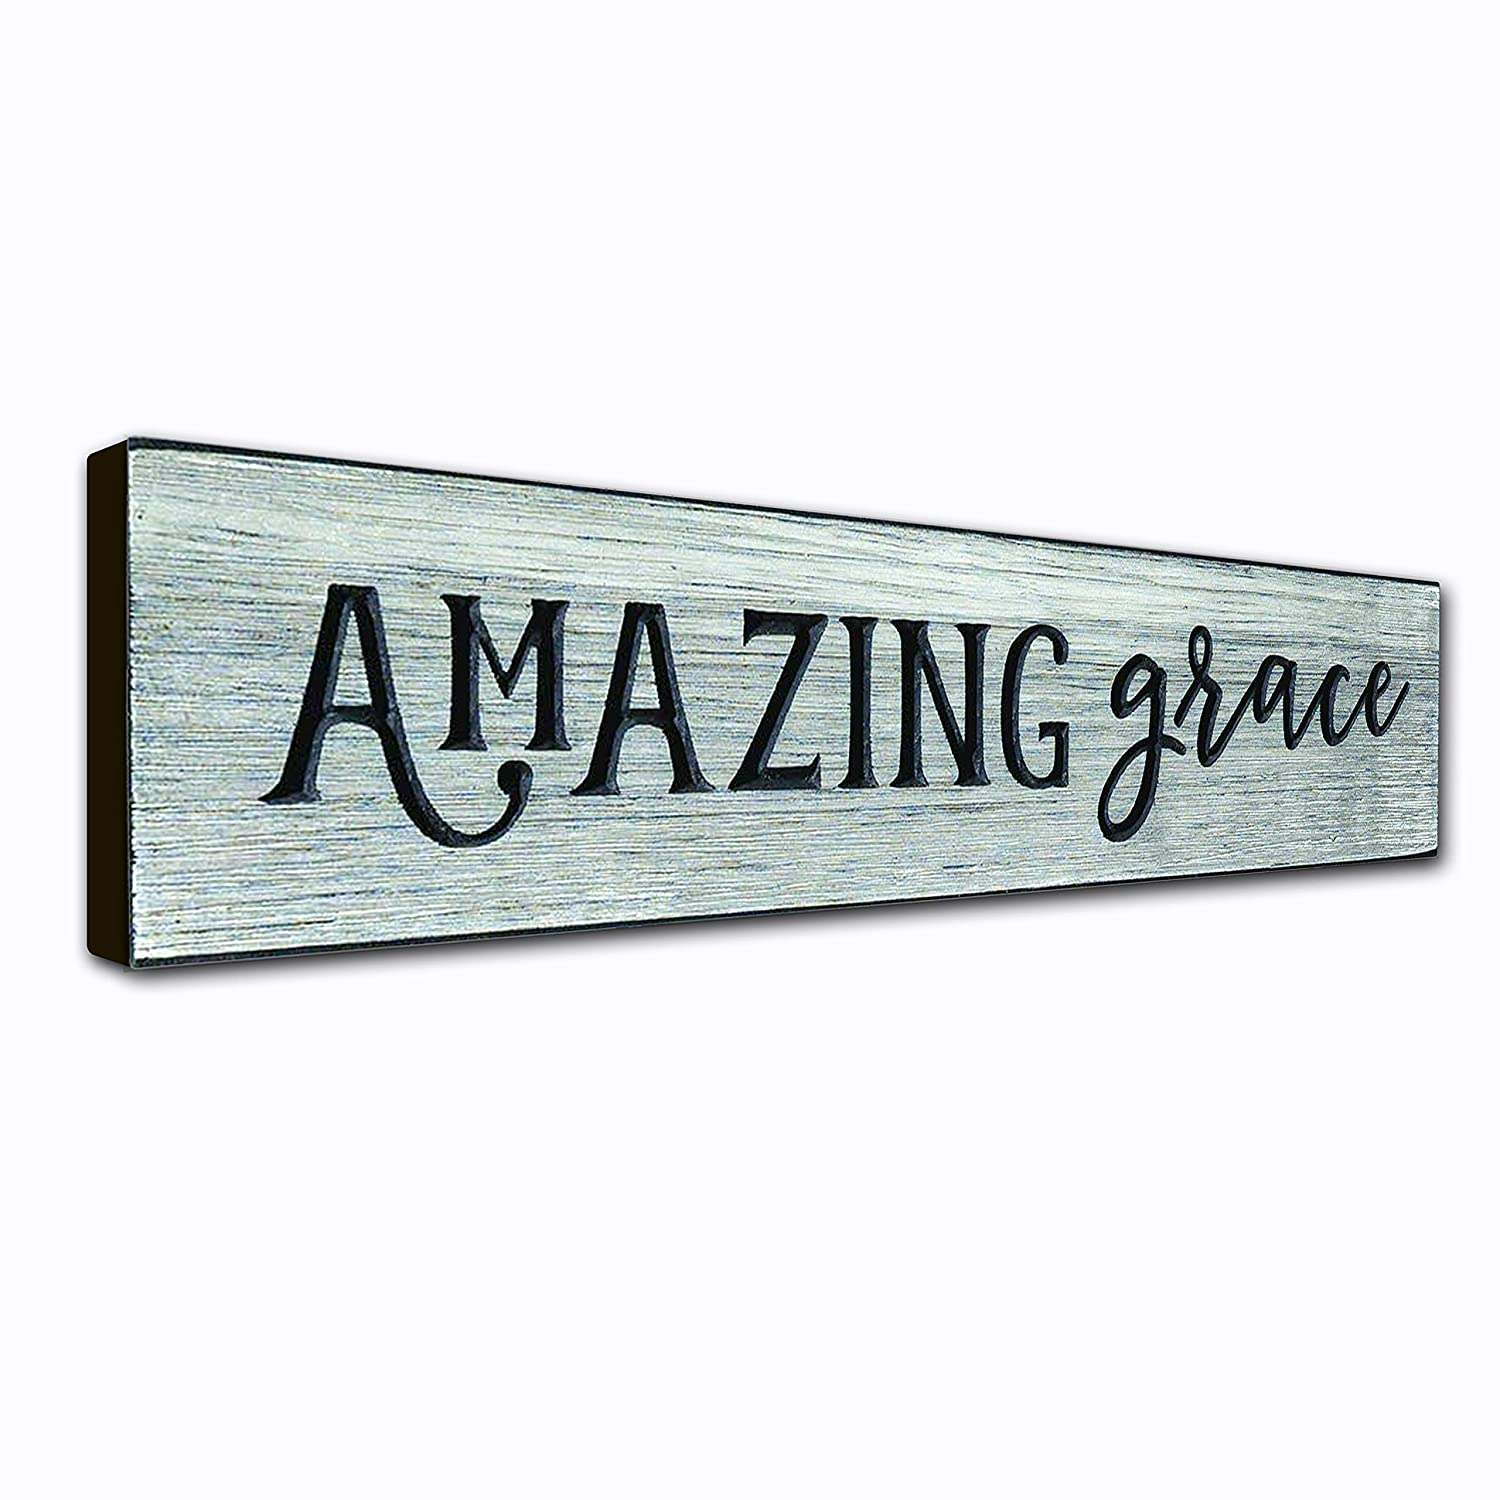 Amazing Grace Wall Art Décor Plaque – 16 x 3.5 Inches - Patriotic Quote on Wooden Frame - Handcrafted in an Amish Community in USA From Real Pine Wood, Housewarming Gift Ideas – Weathered Gray